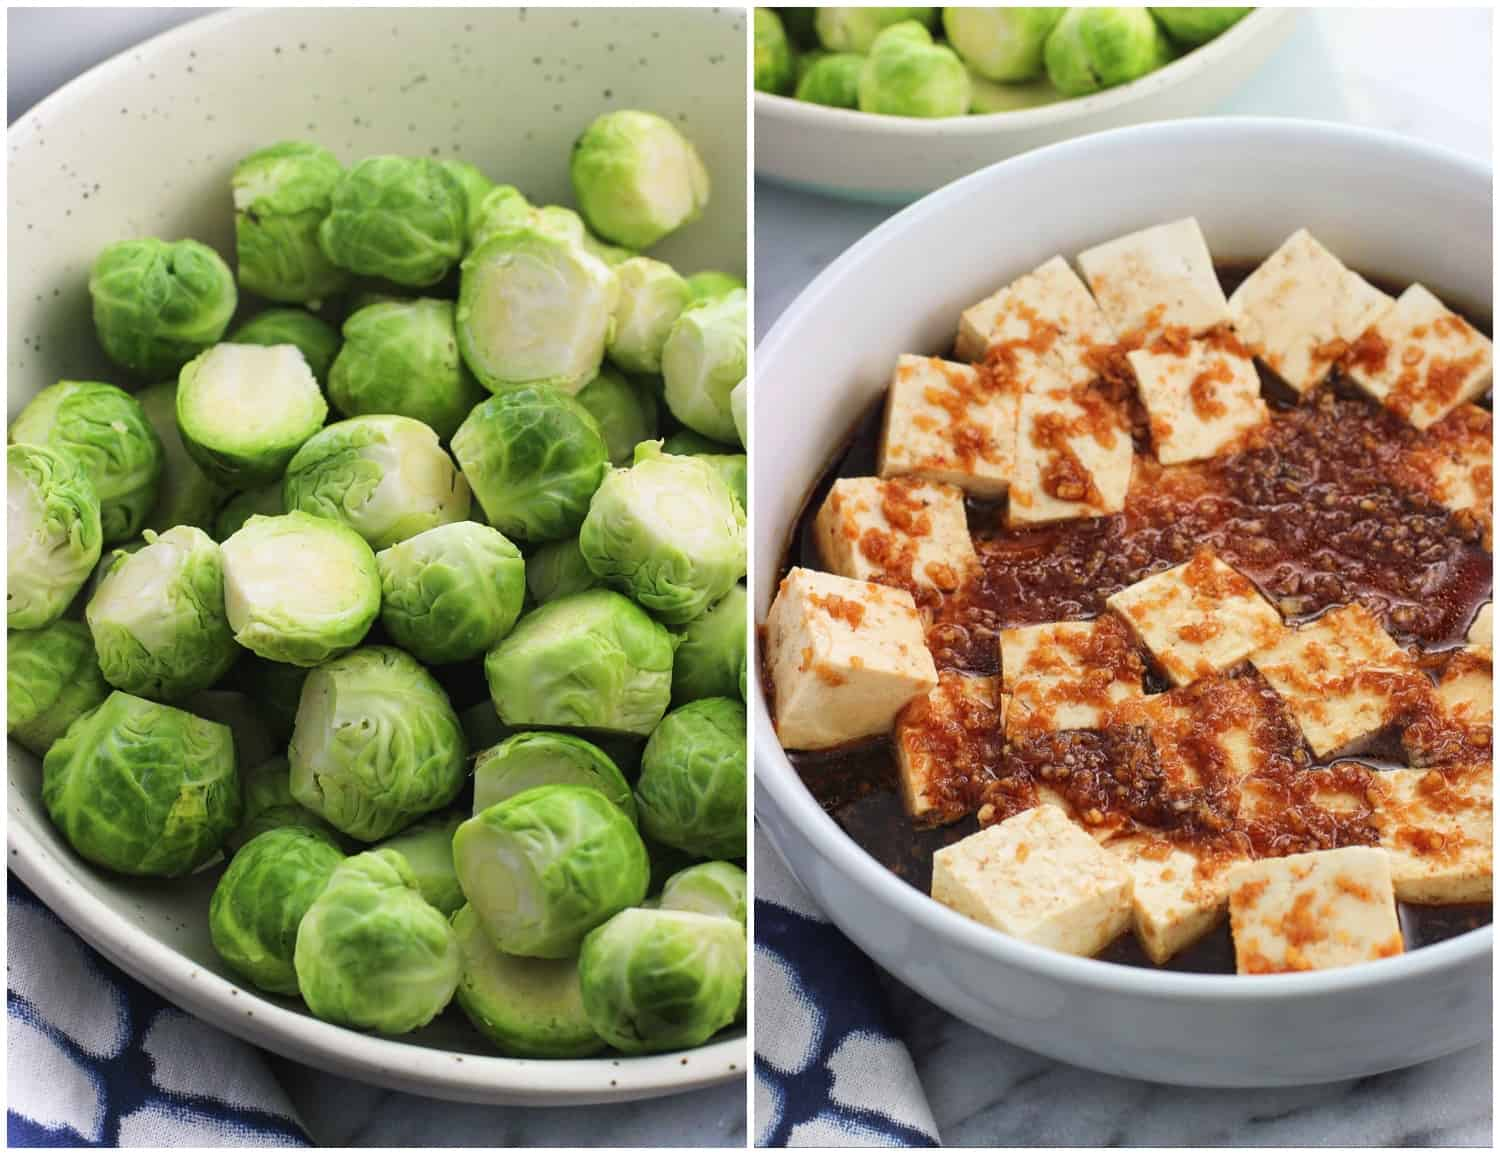 A side-by-side imagine of raw brussels sprout halves (left) and marinating cubes of tofu (right)